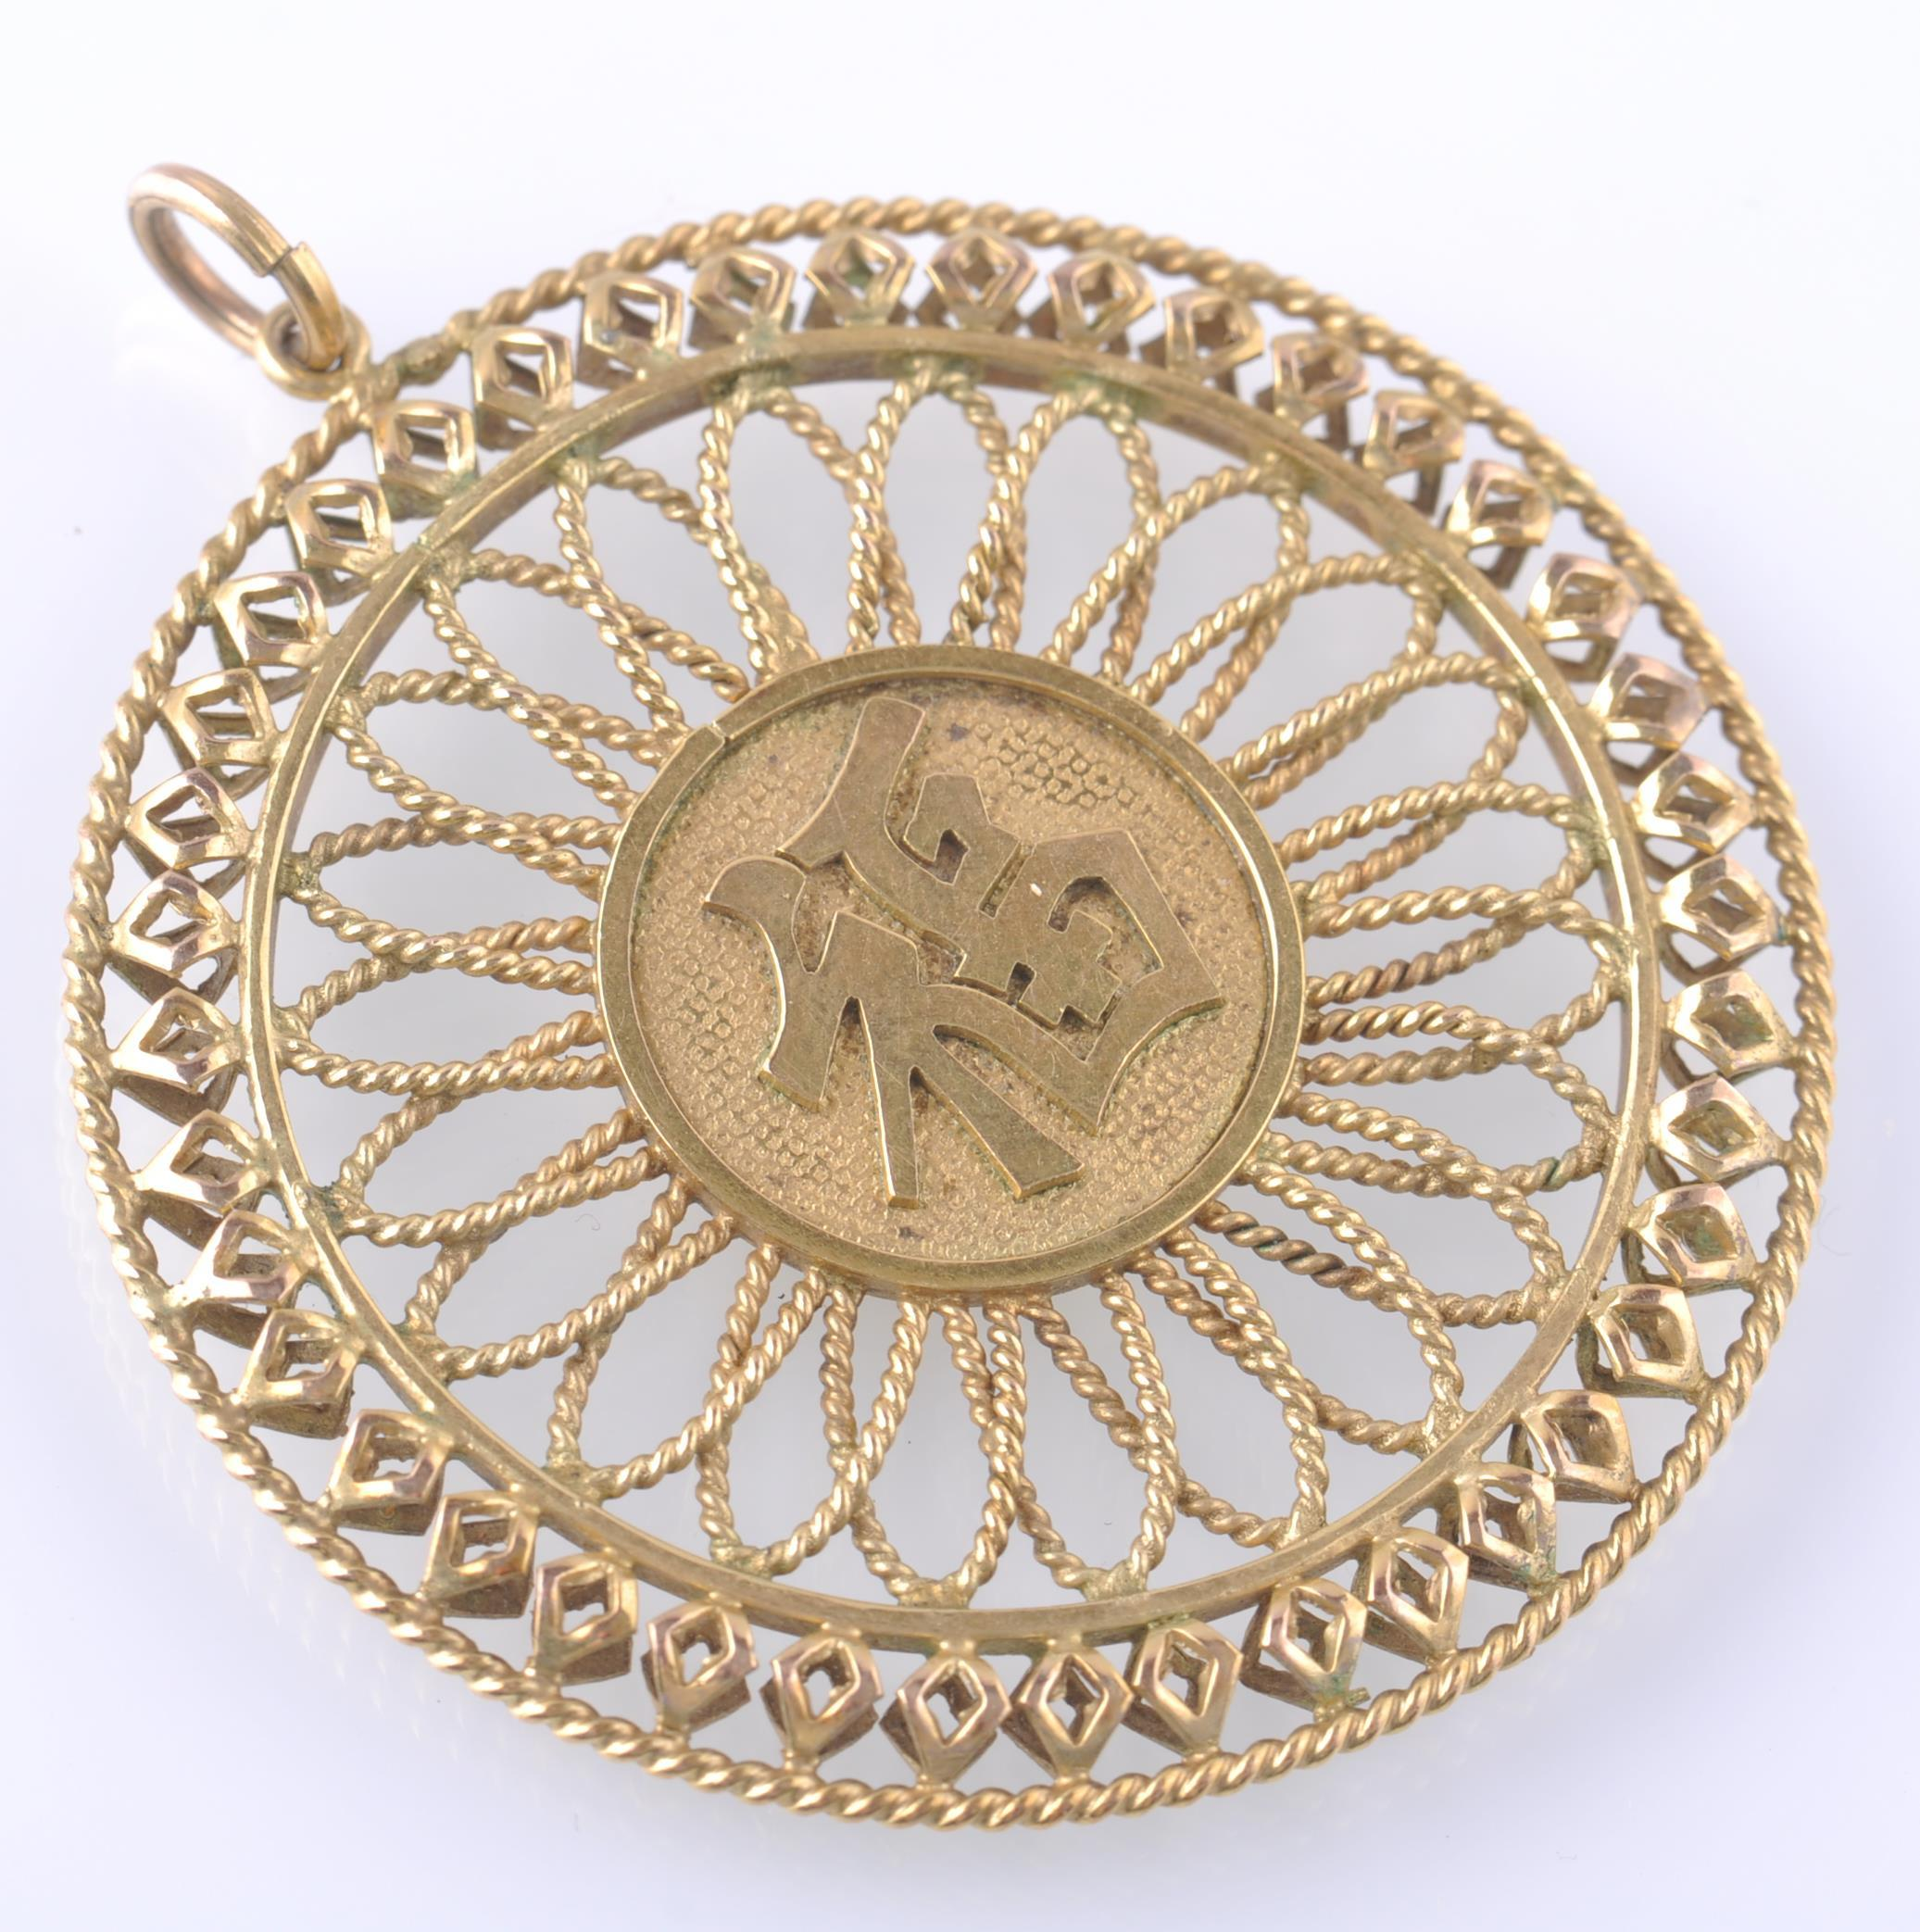 A LARGE GOLD CHINESE PENDANT - Image 2 of 3